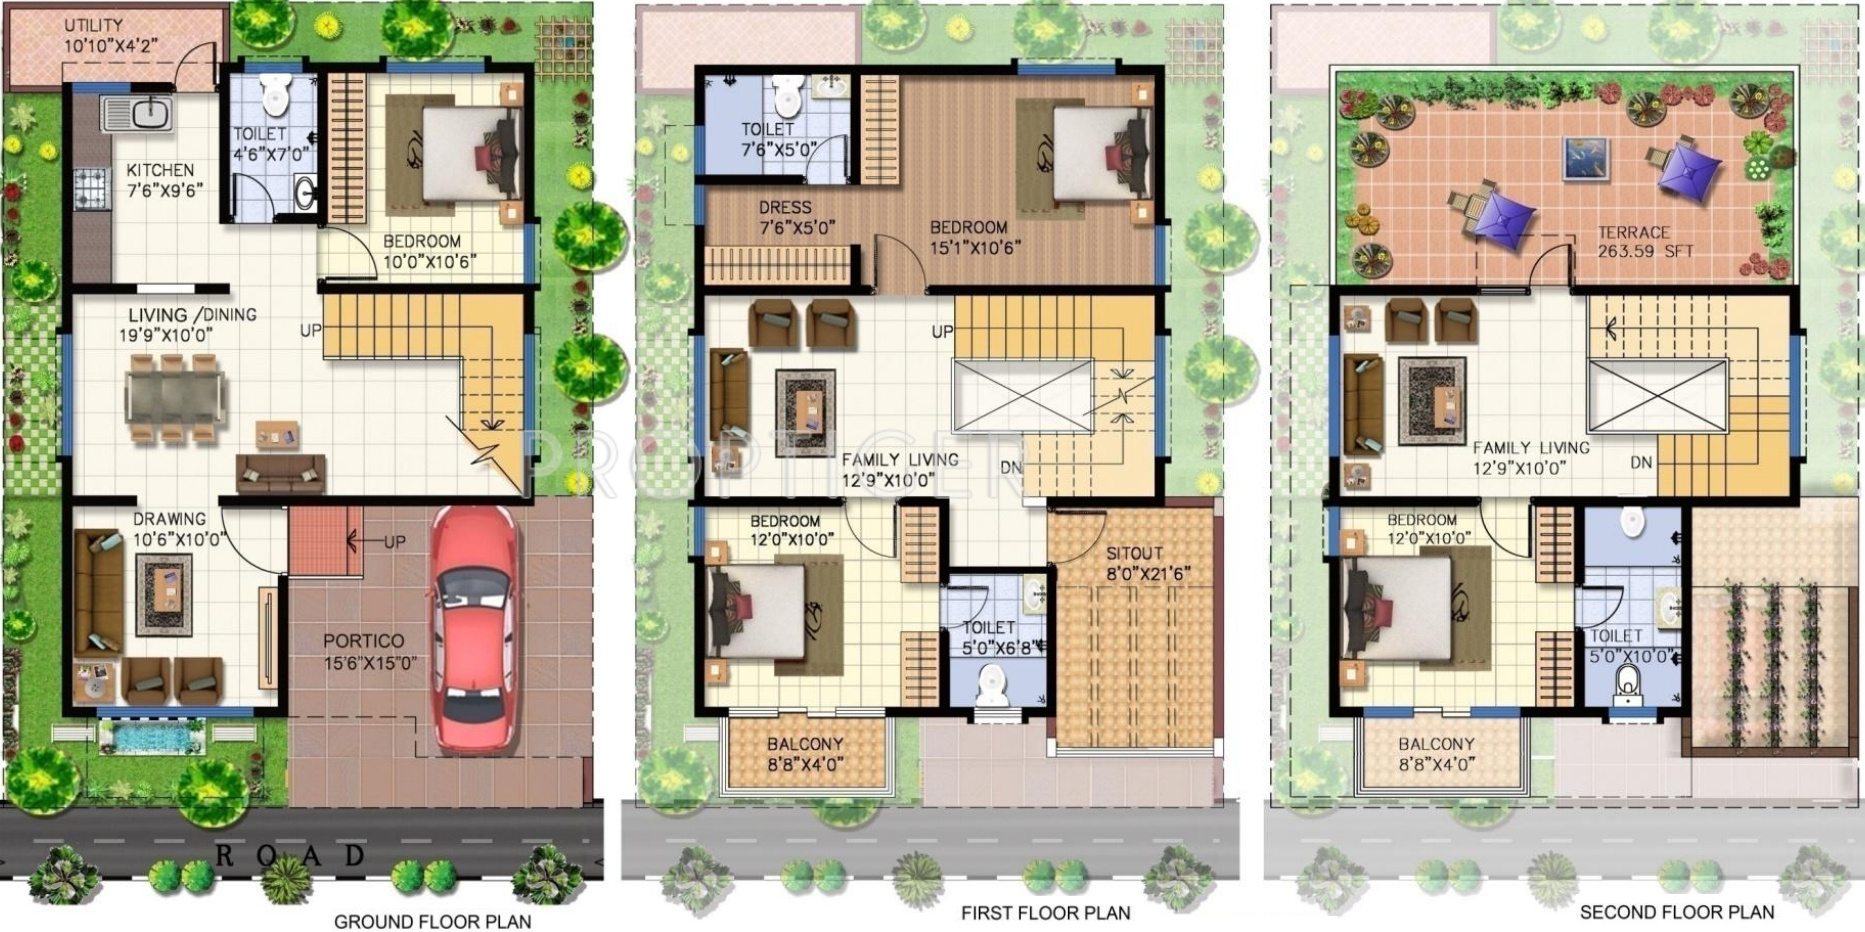 Js lake mist in yelahanka bangalore price location map for Lake house plans under 2000 square feet